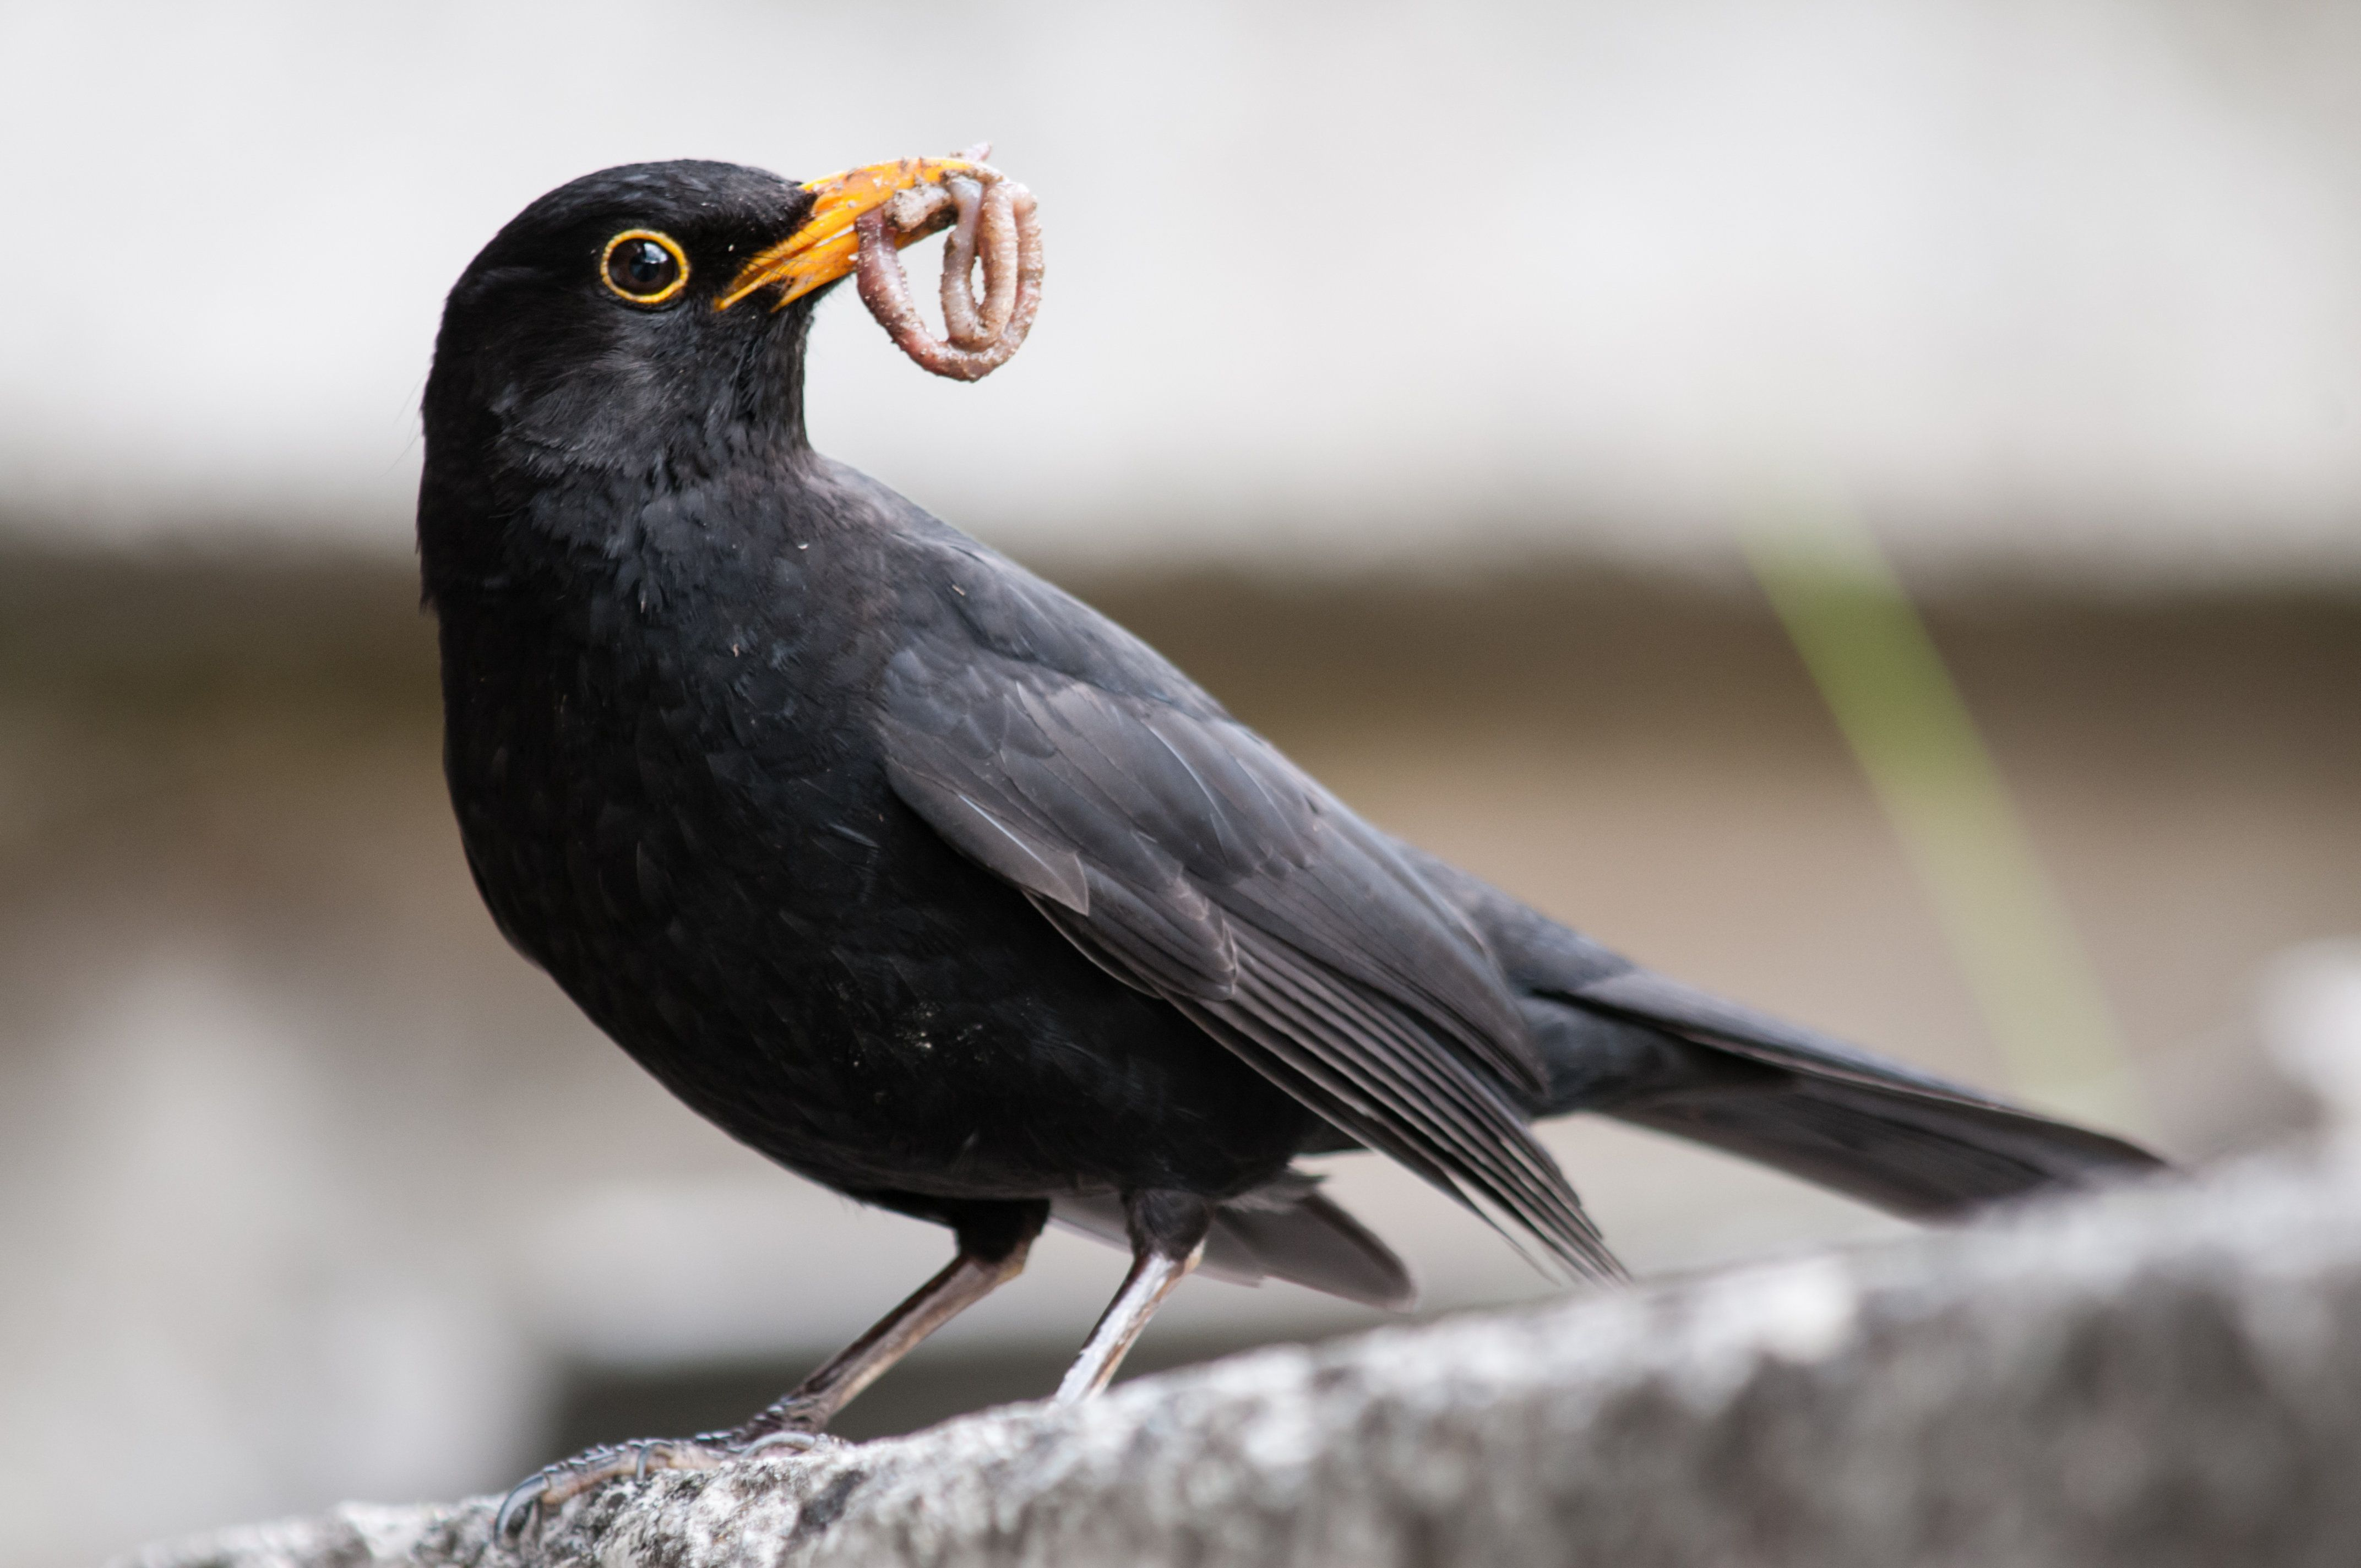 blackbird with worm in mouth